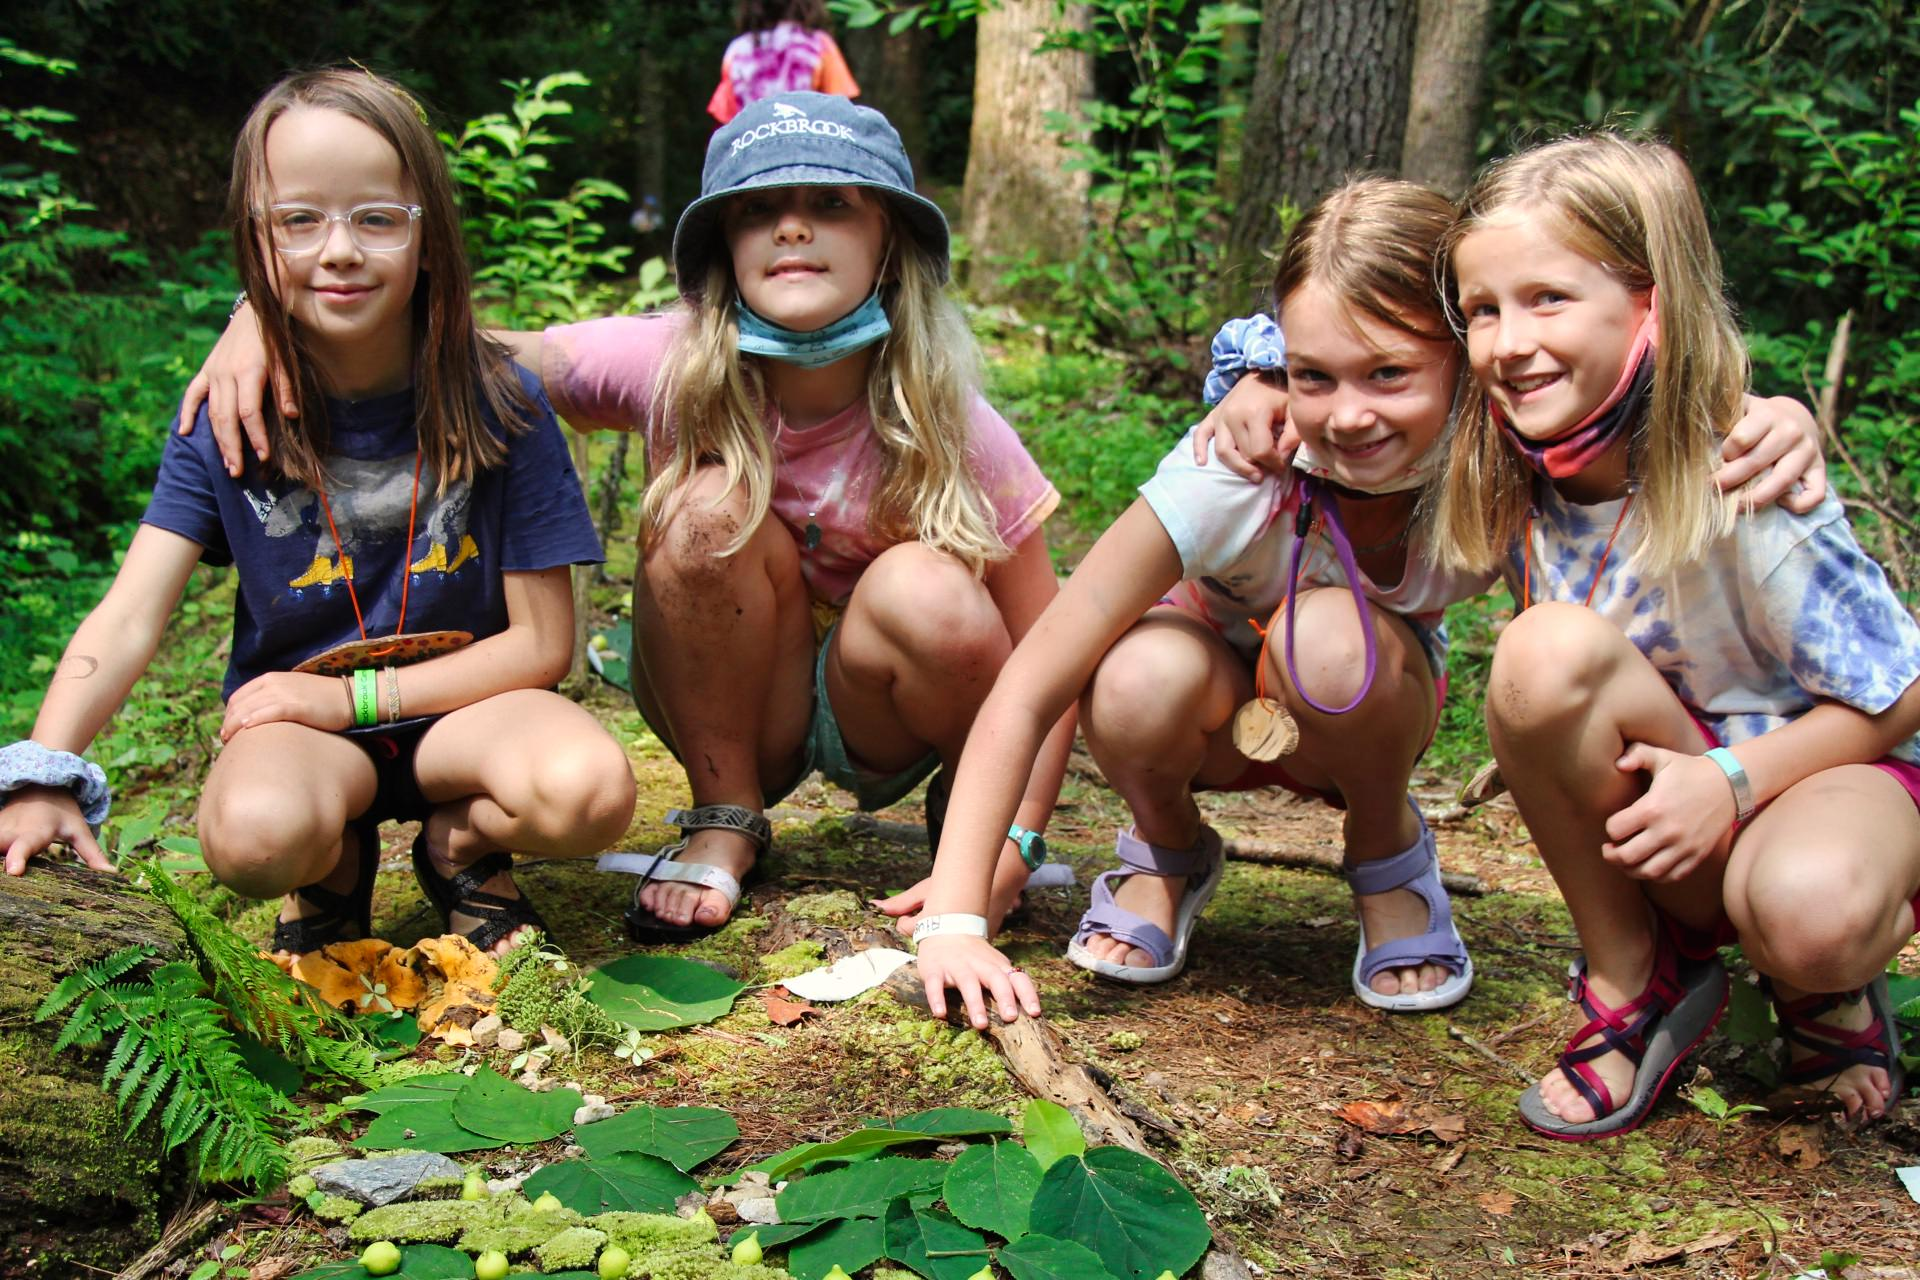 small camp girls building fairy houses